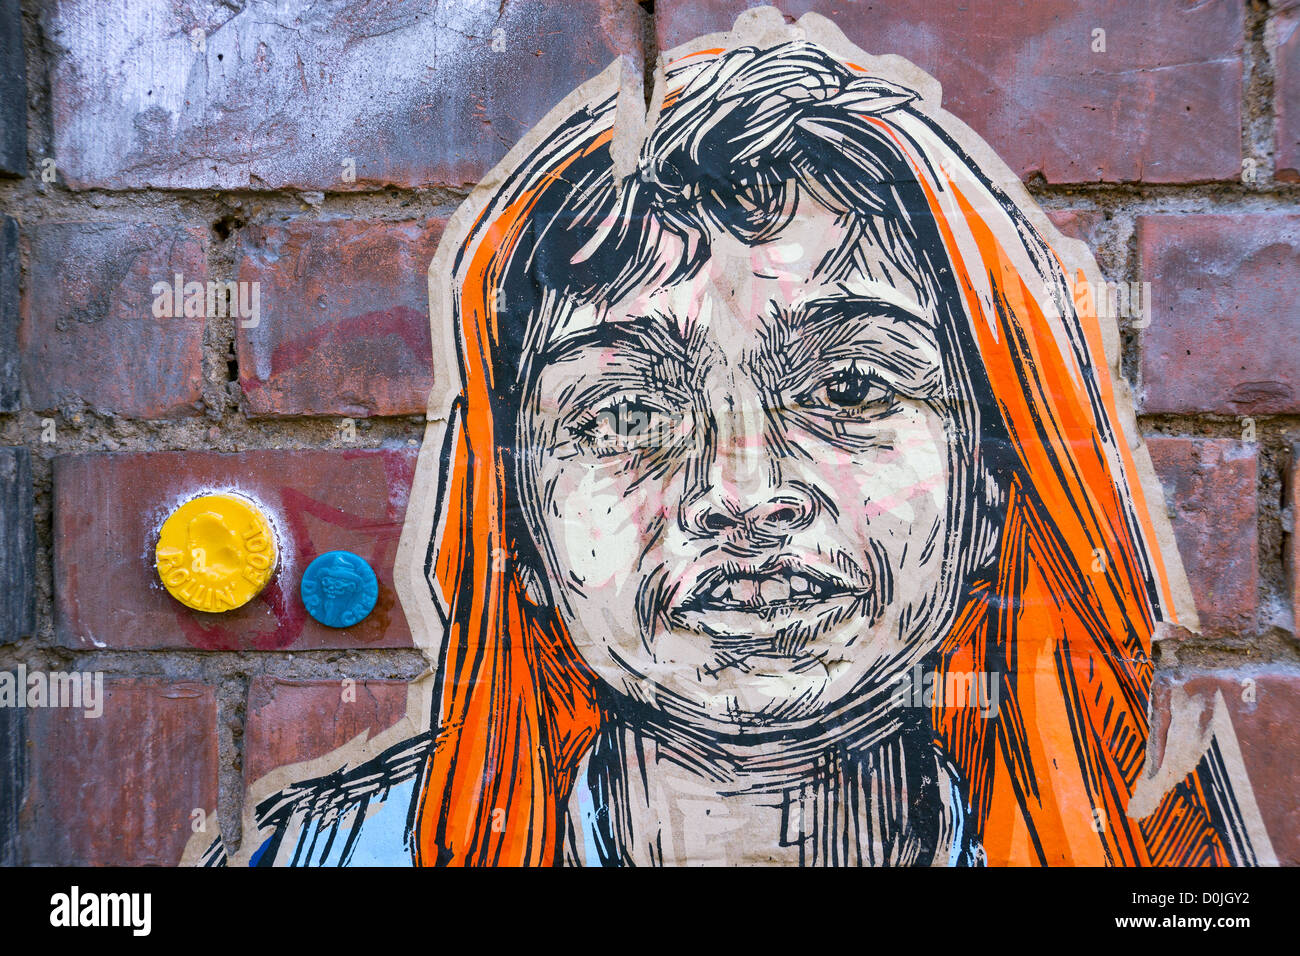 Boy's face on paper stuck on a wall in Shoreditch. - Stock Image